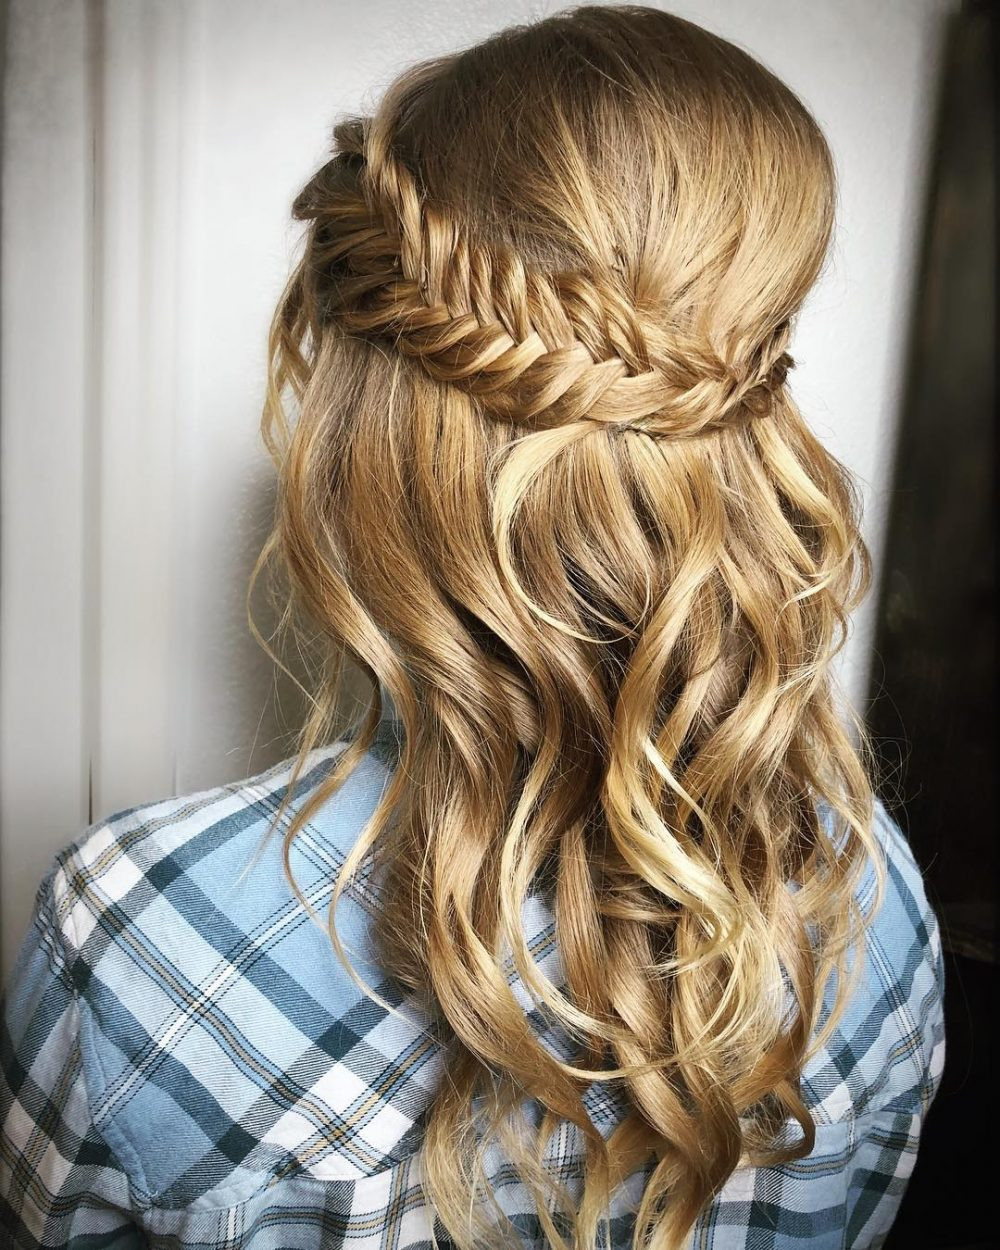 Best ideas about Down Prom Hairstyles . Save or Pin Half Up Half Down Prom Hairstyles and How To s Now.